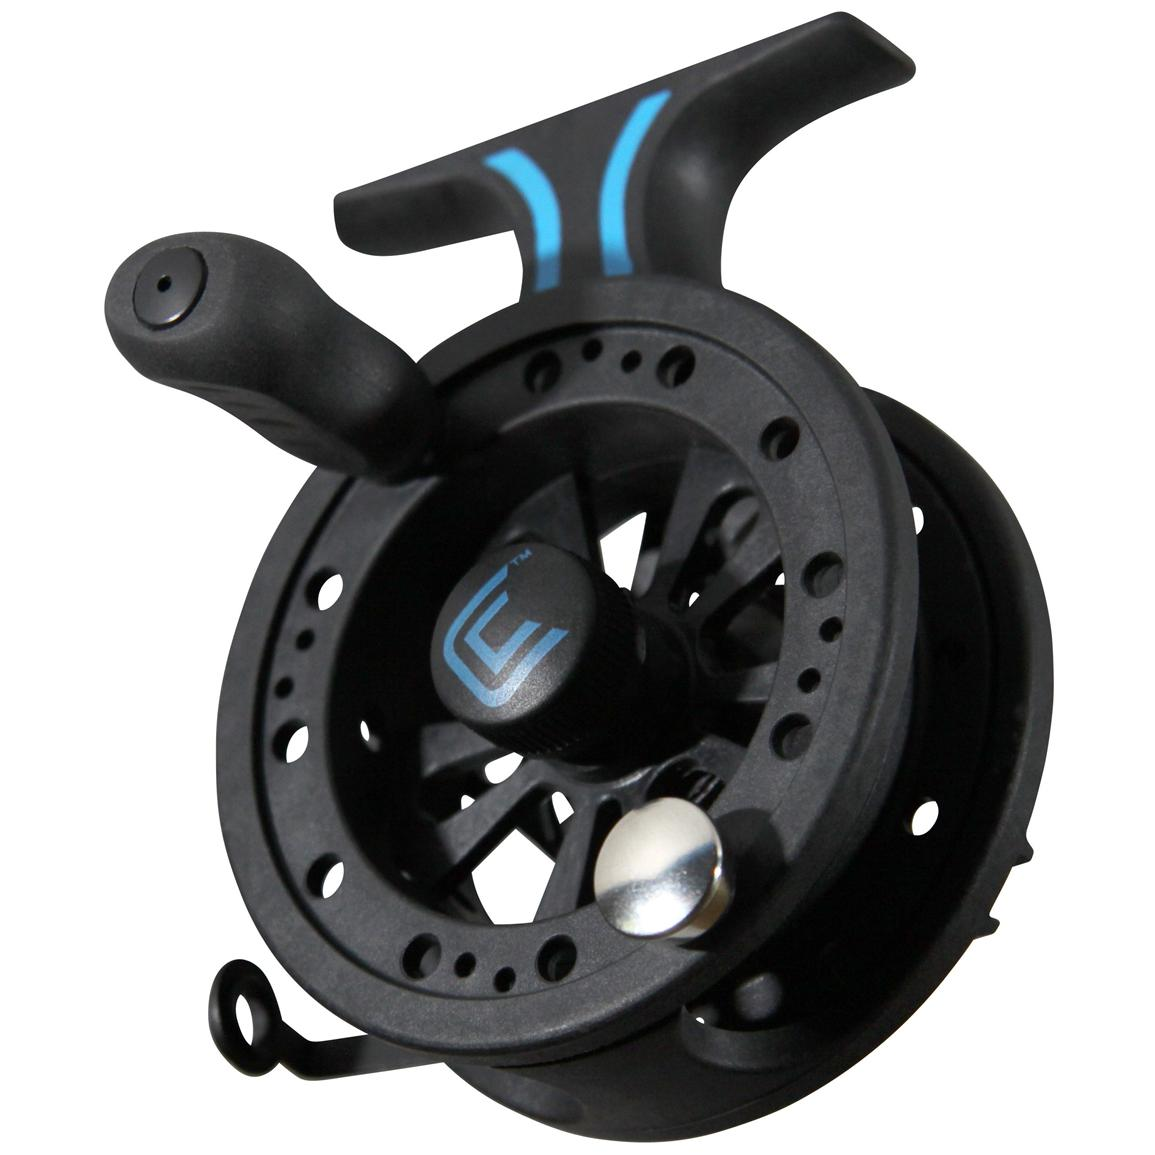 Clam® Ice Spooler 200 Fishing Reel